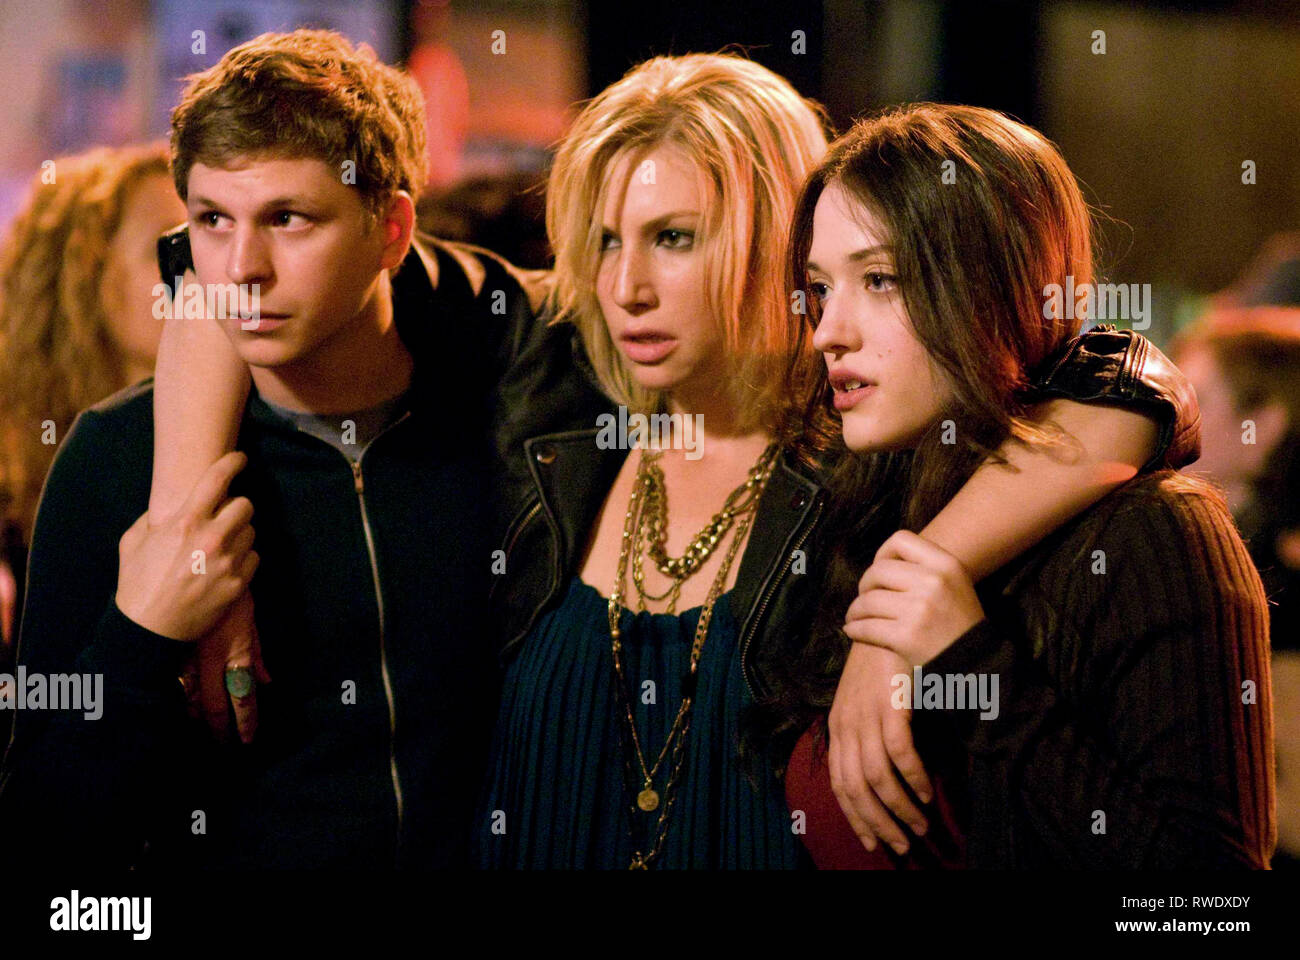 CERA,GRAYNOR,DENNINGS, NICK AND NORAH'S INFINITE PLAYLIST, 2008 - Stock Image